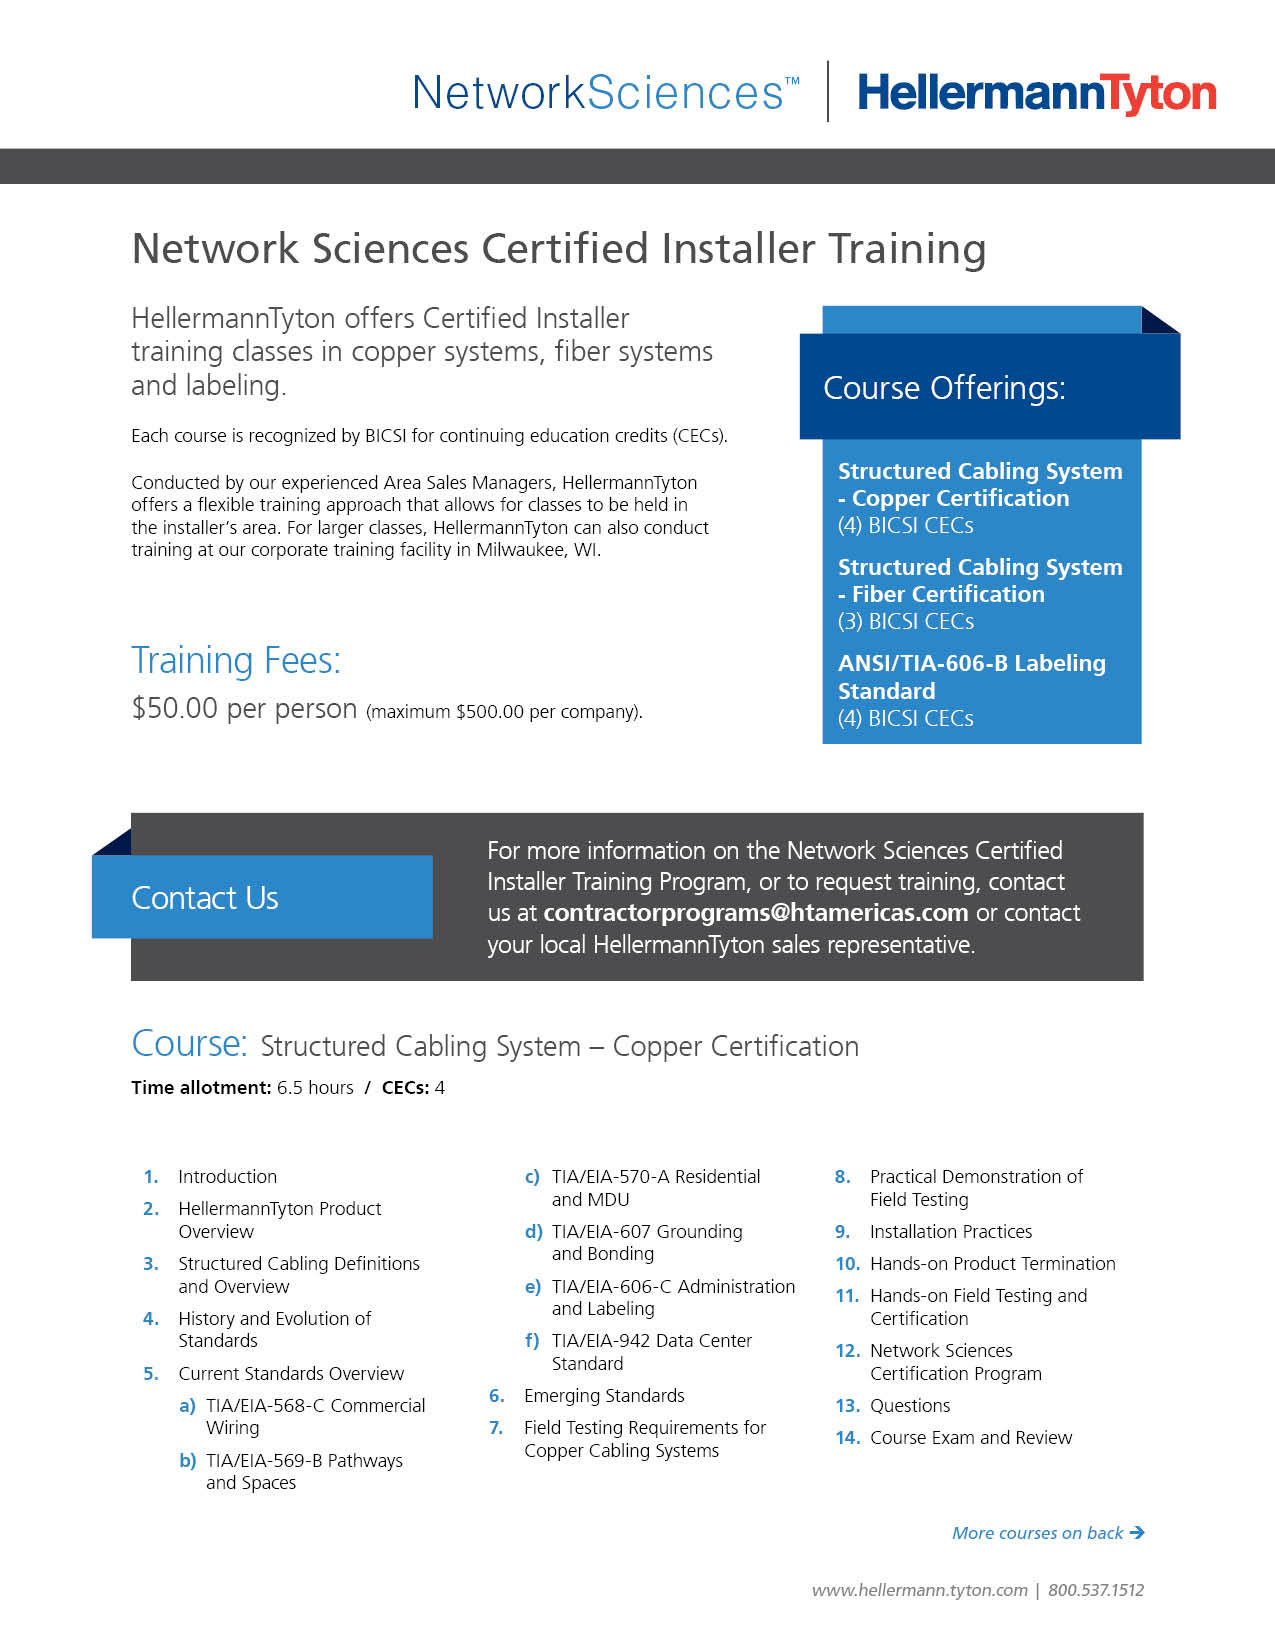 hight resolution of network sciences certified installer training